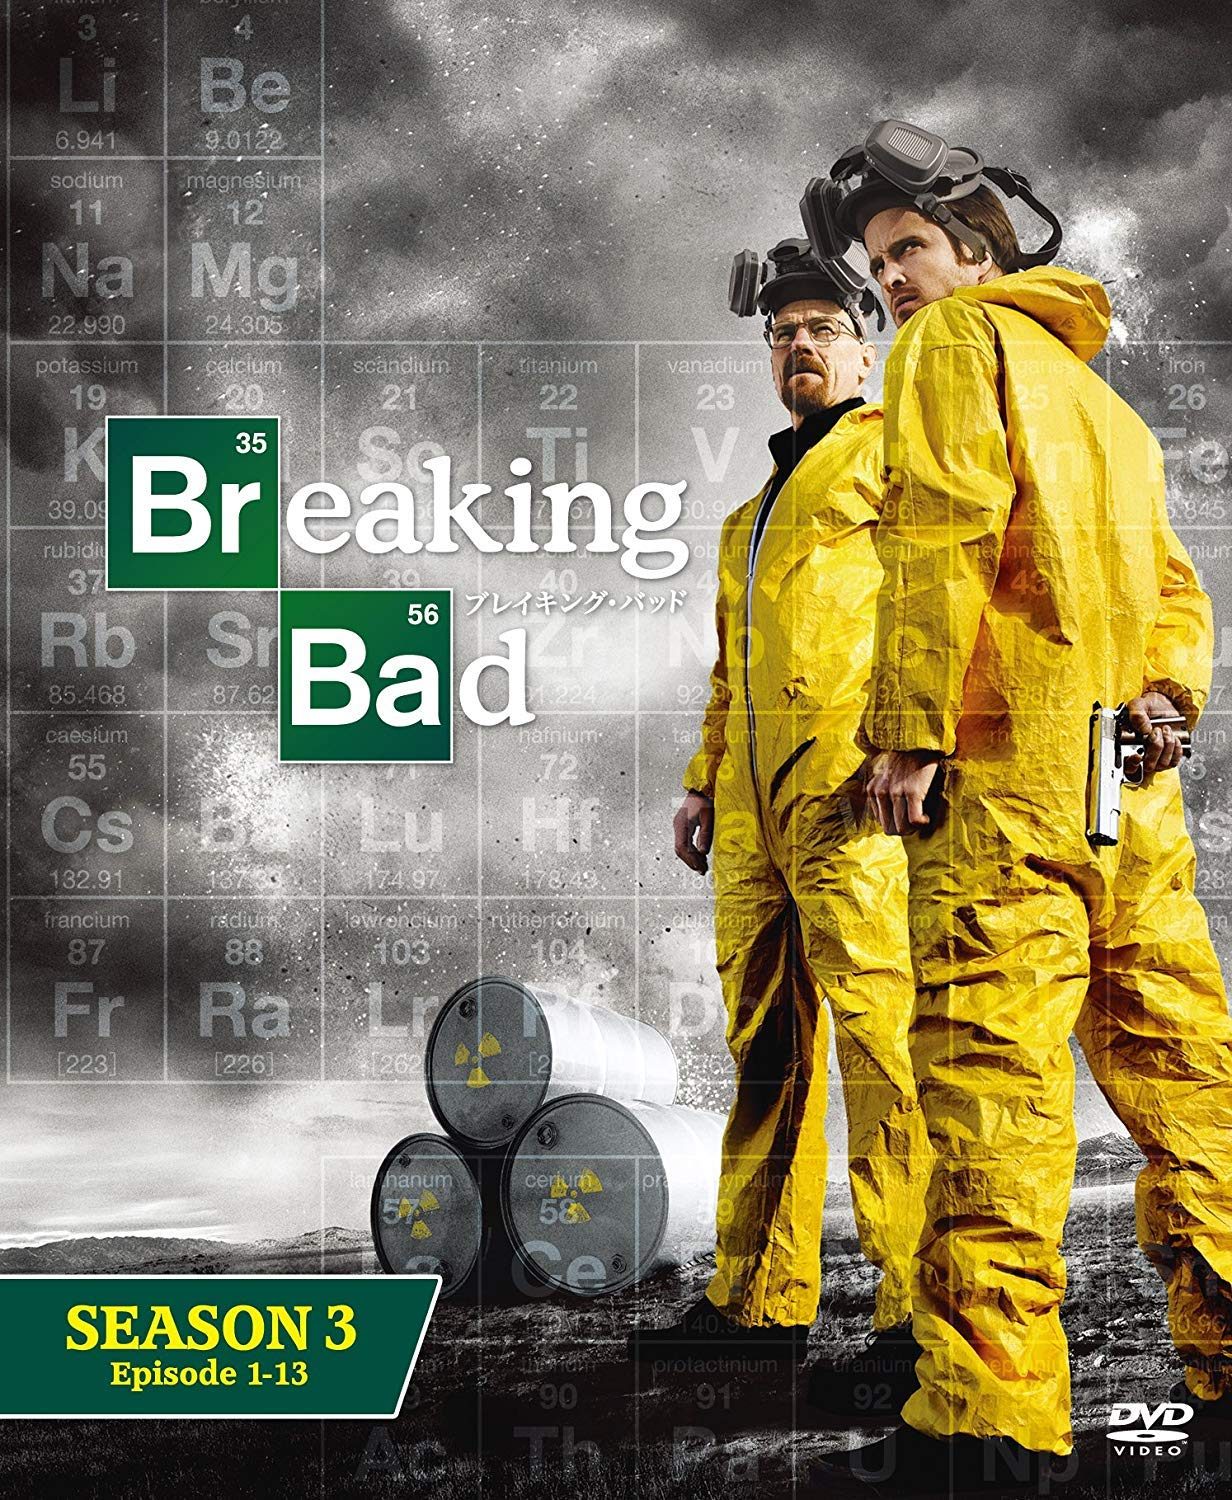 Bryan Cranston - Breaking Bad Season 3 Box 6 Dvd Edizione: Giappone Italia: Amazon.es: Cine y Series TV